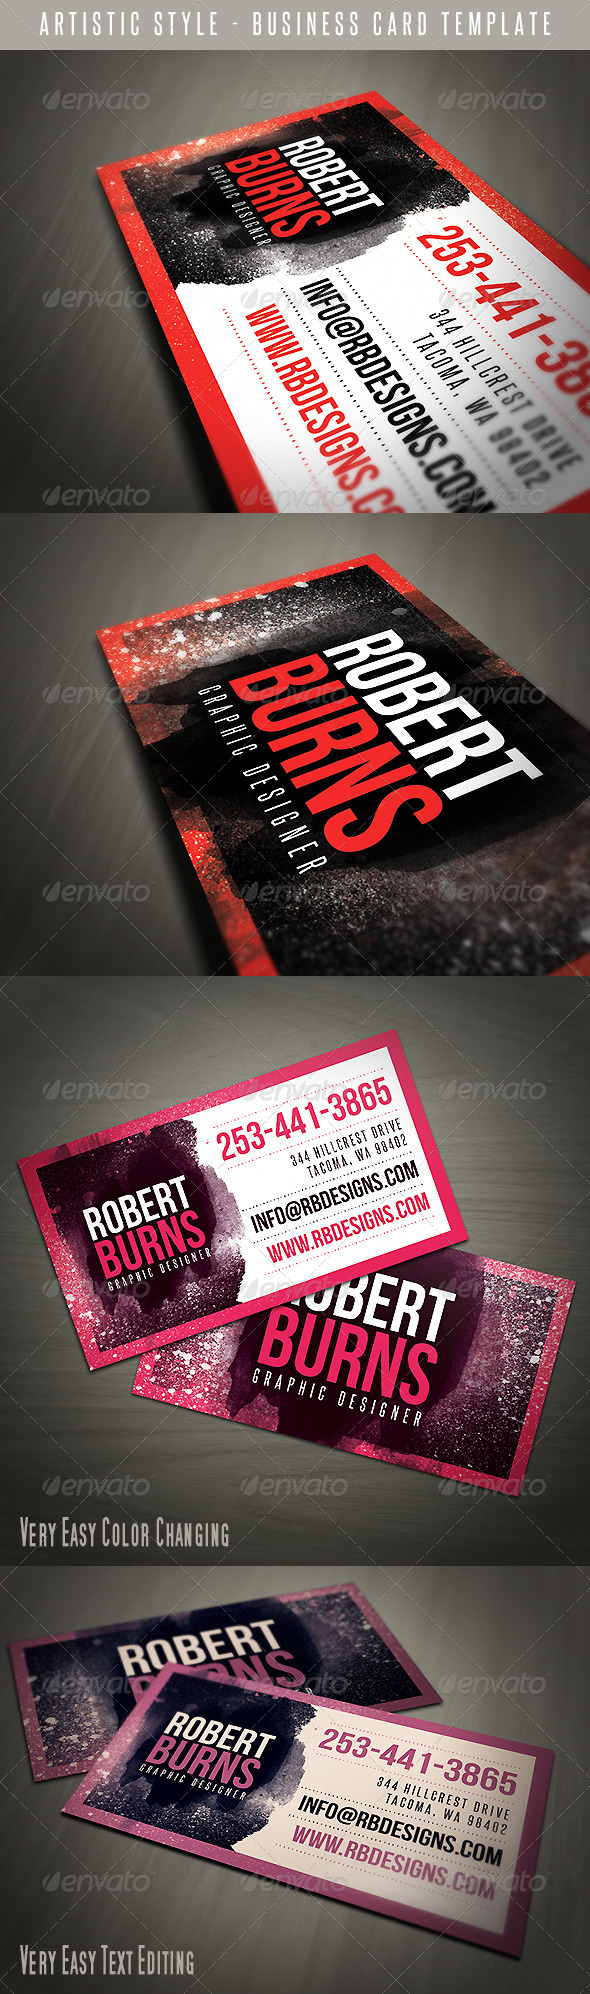 Artistic Business Card - Creative Business Cards